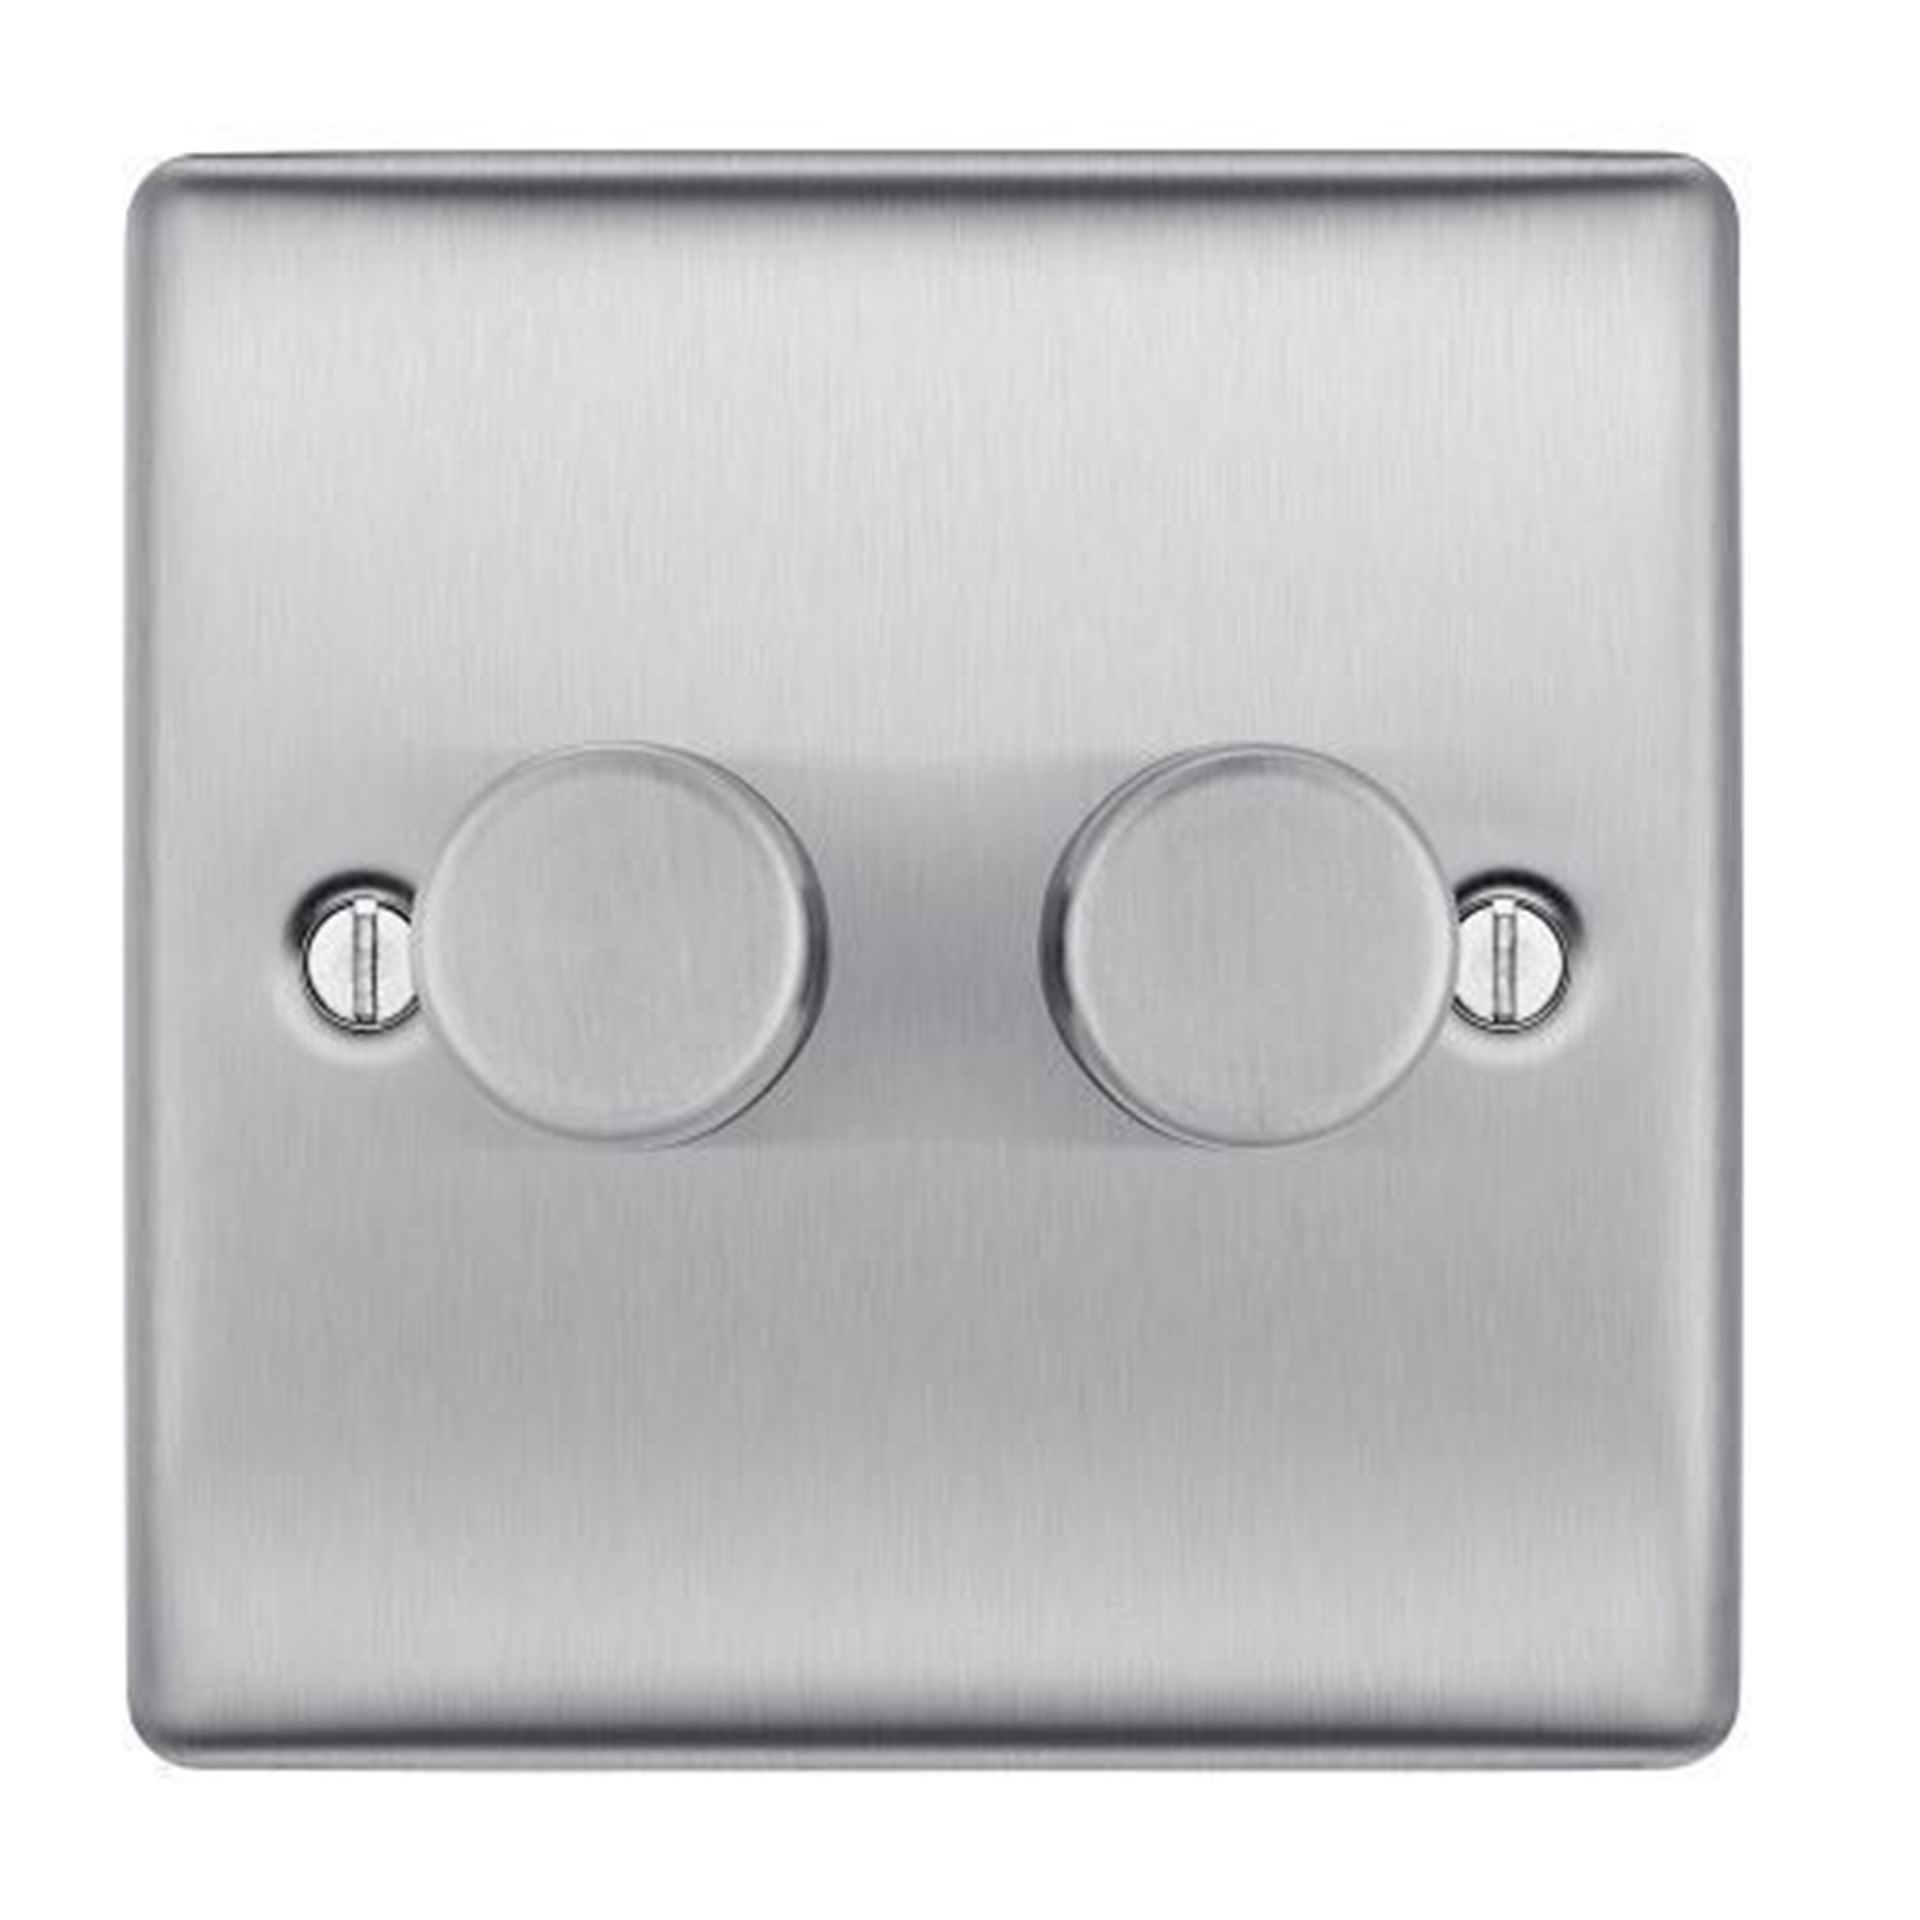 NBS82P BRUSHED STEEL 400W 1 GANG 2 WAY DIMMER